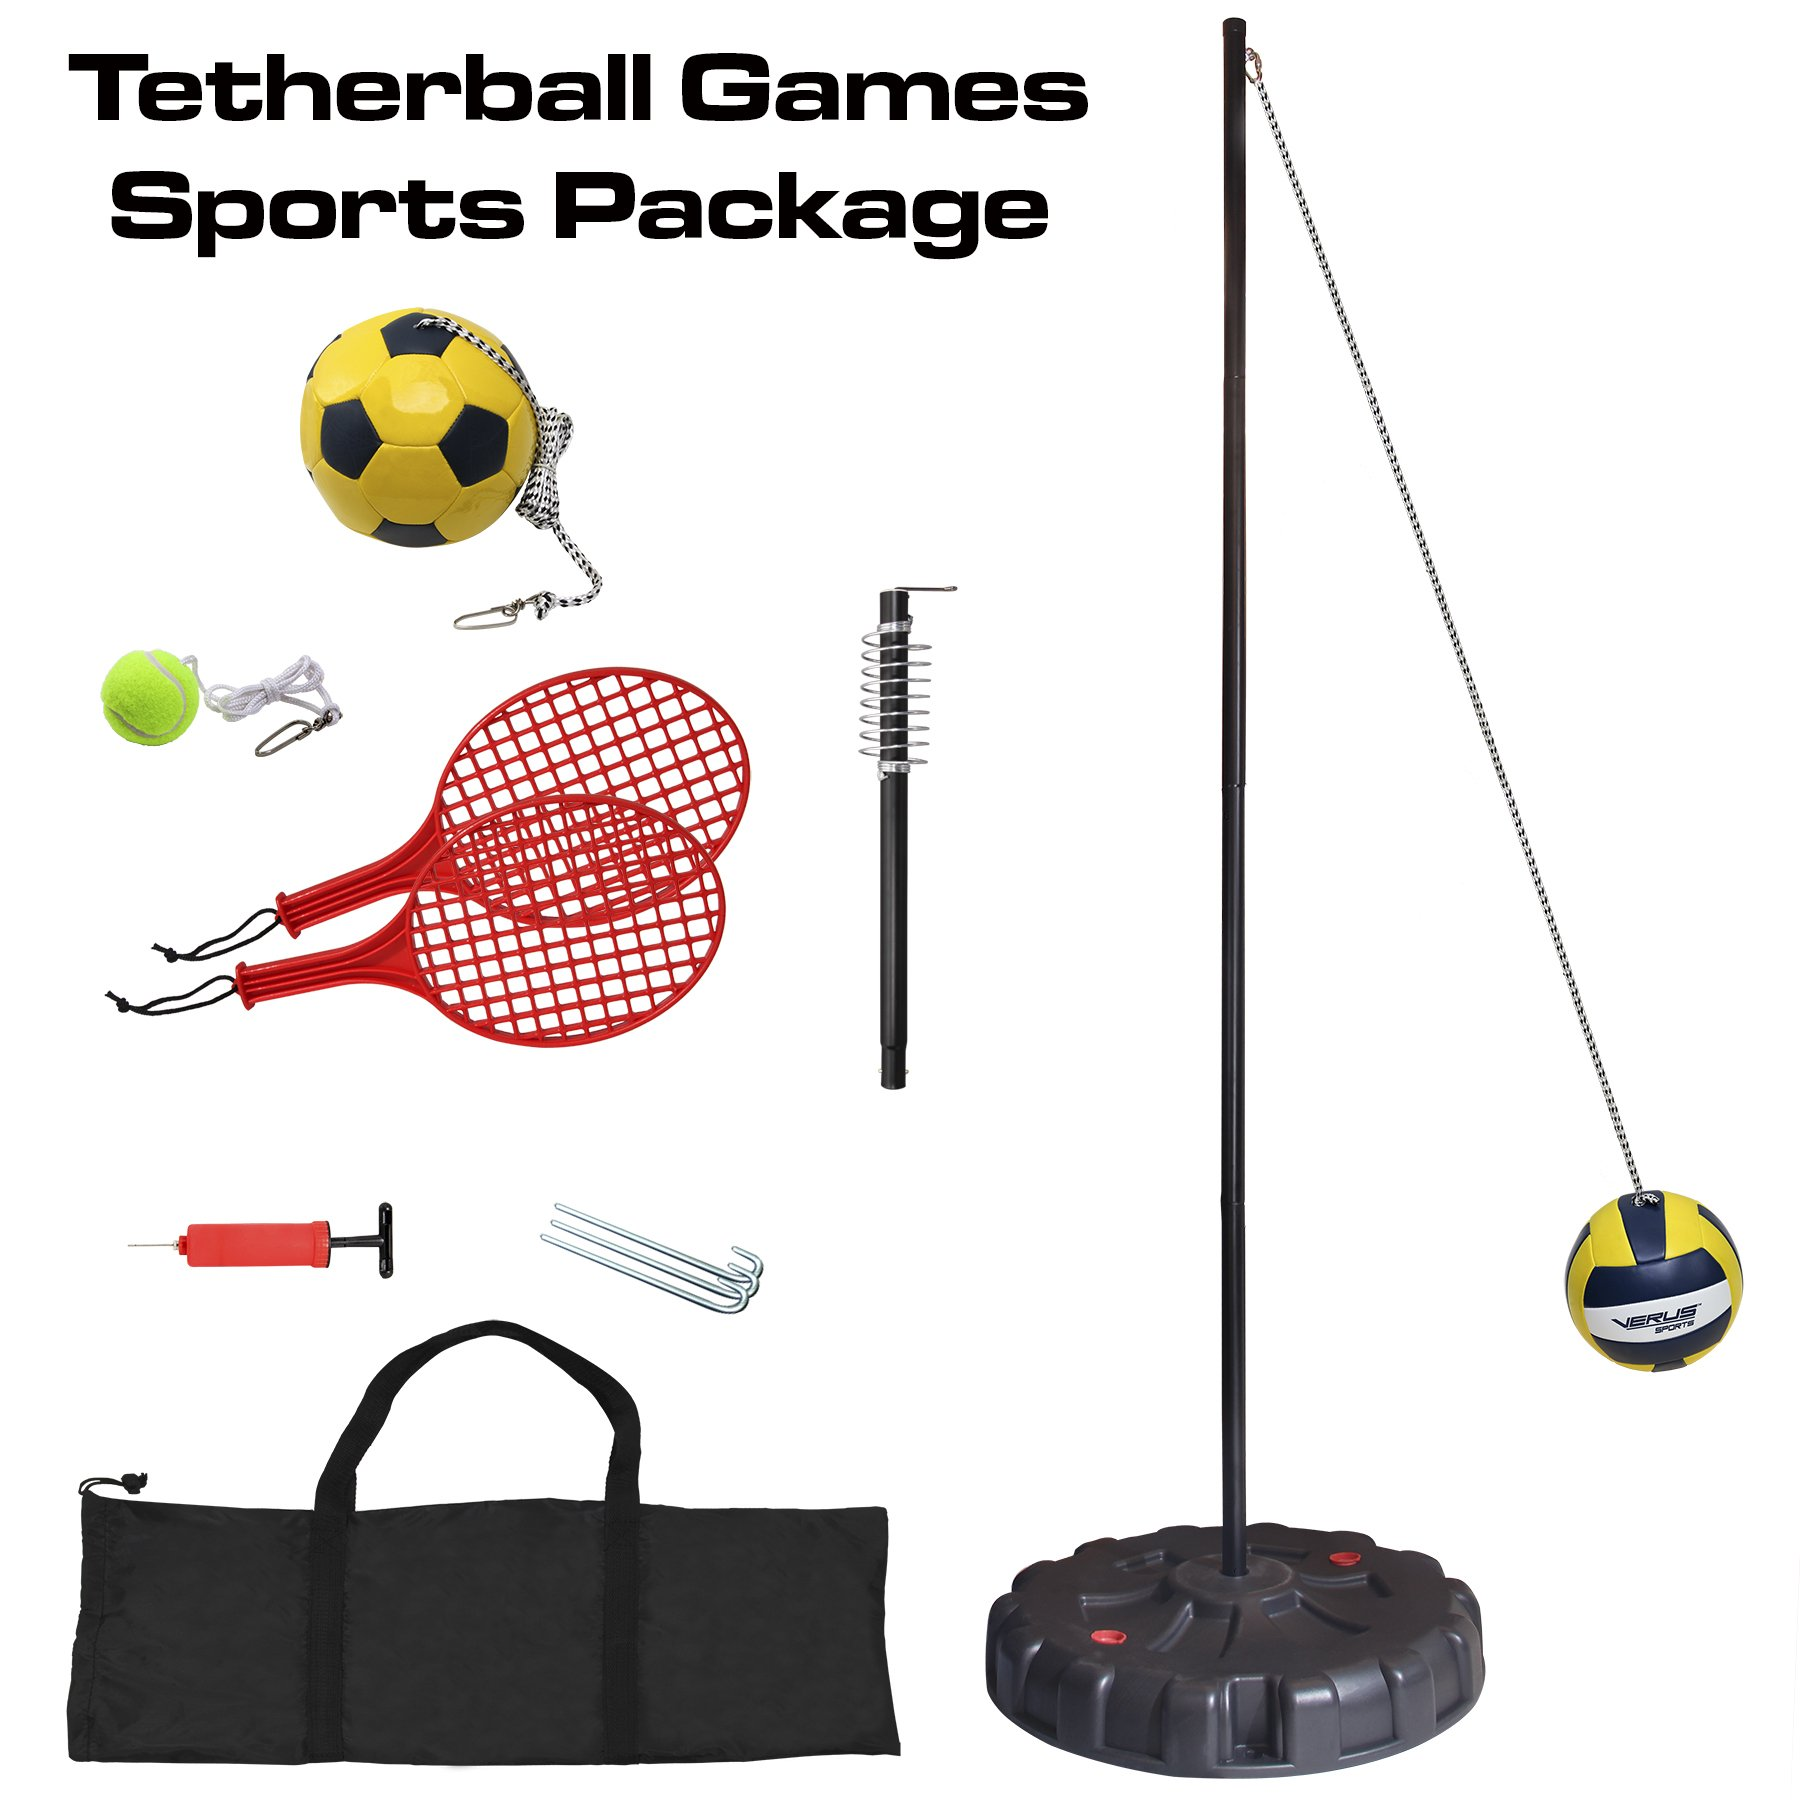 Verus Sports Portable 3-in-1 Tetherball Set by Verus Sports (Image #1)